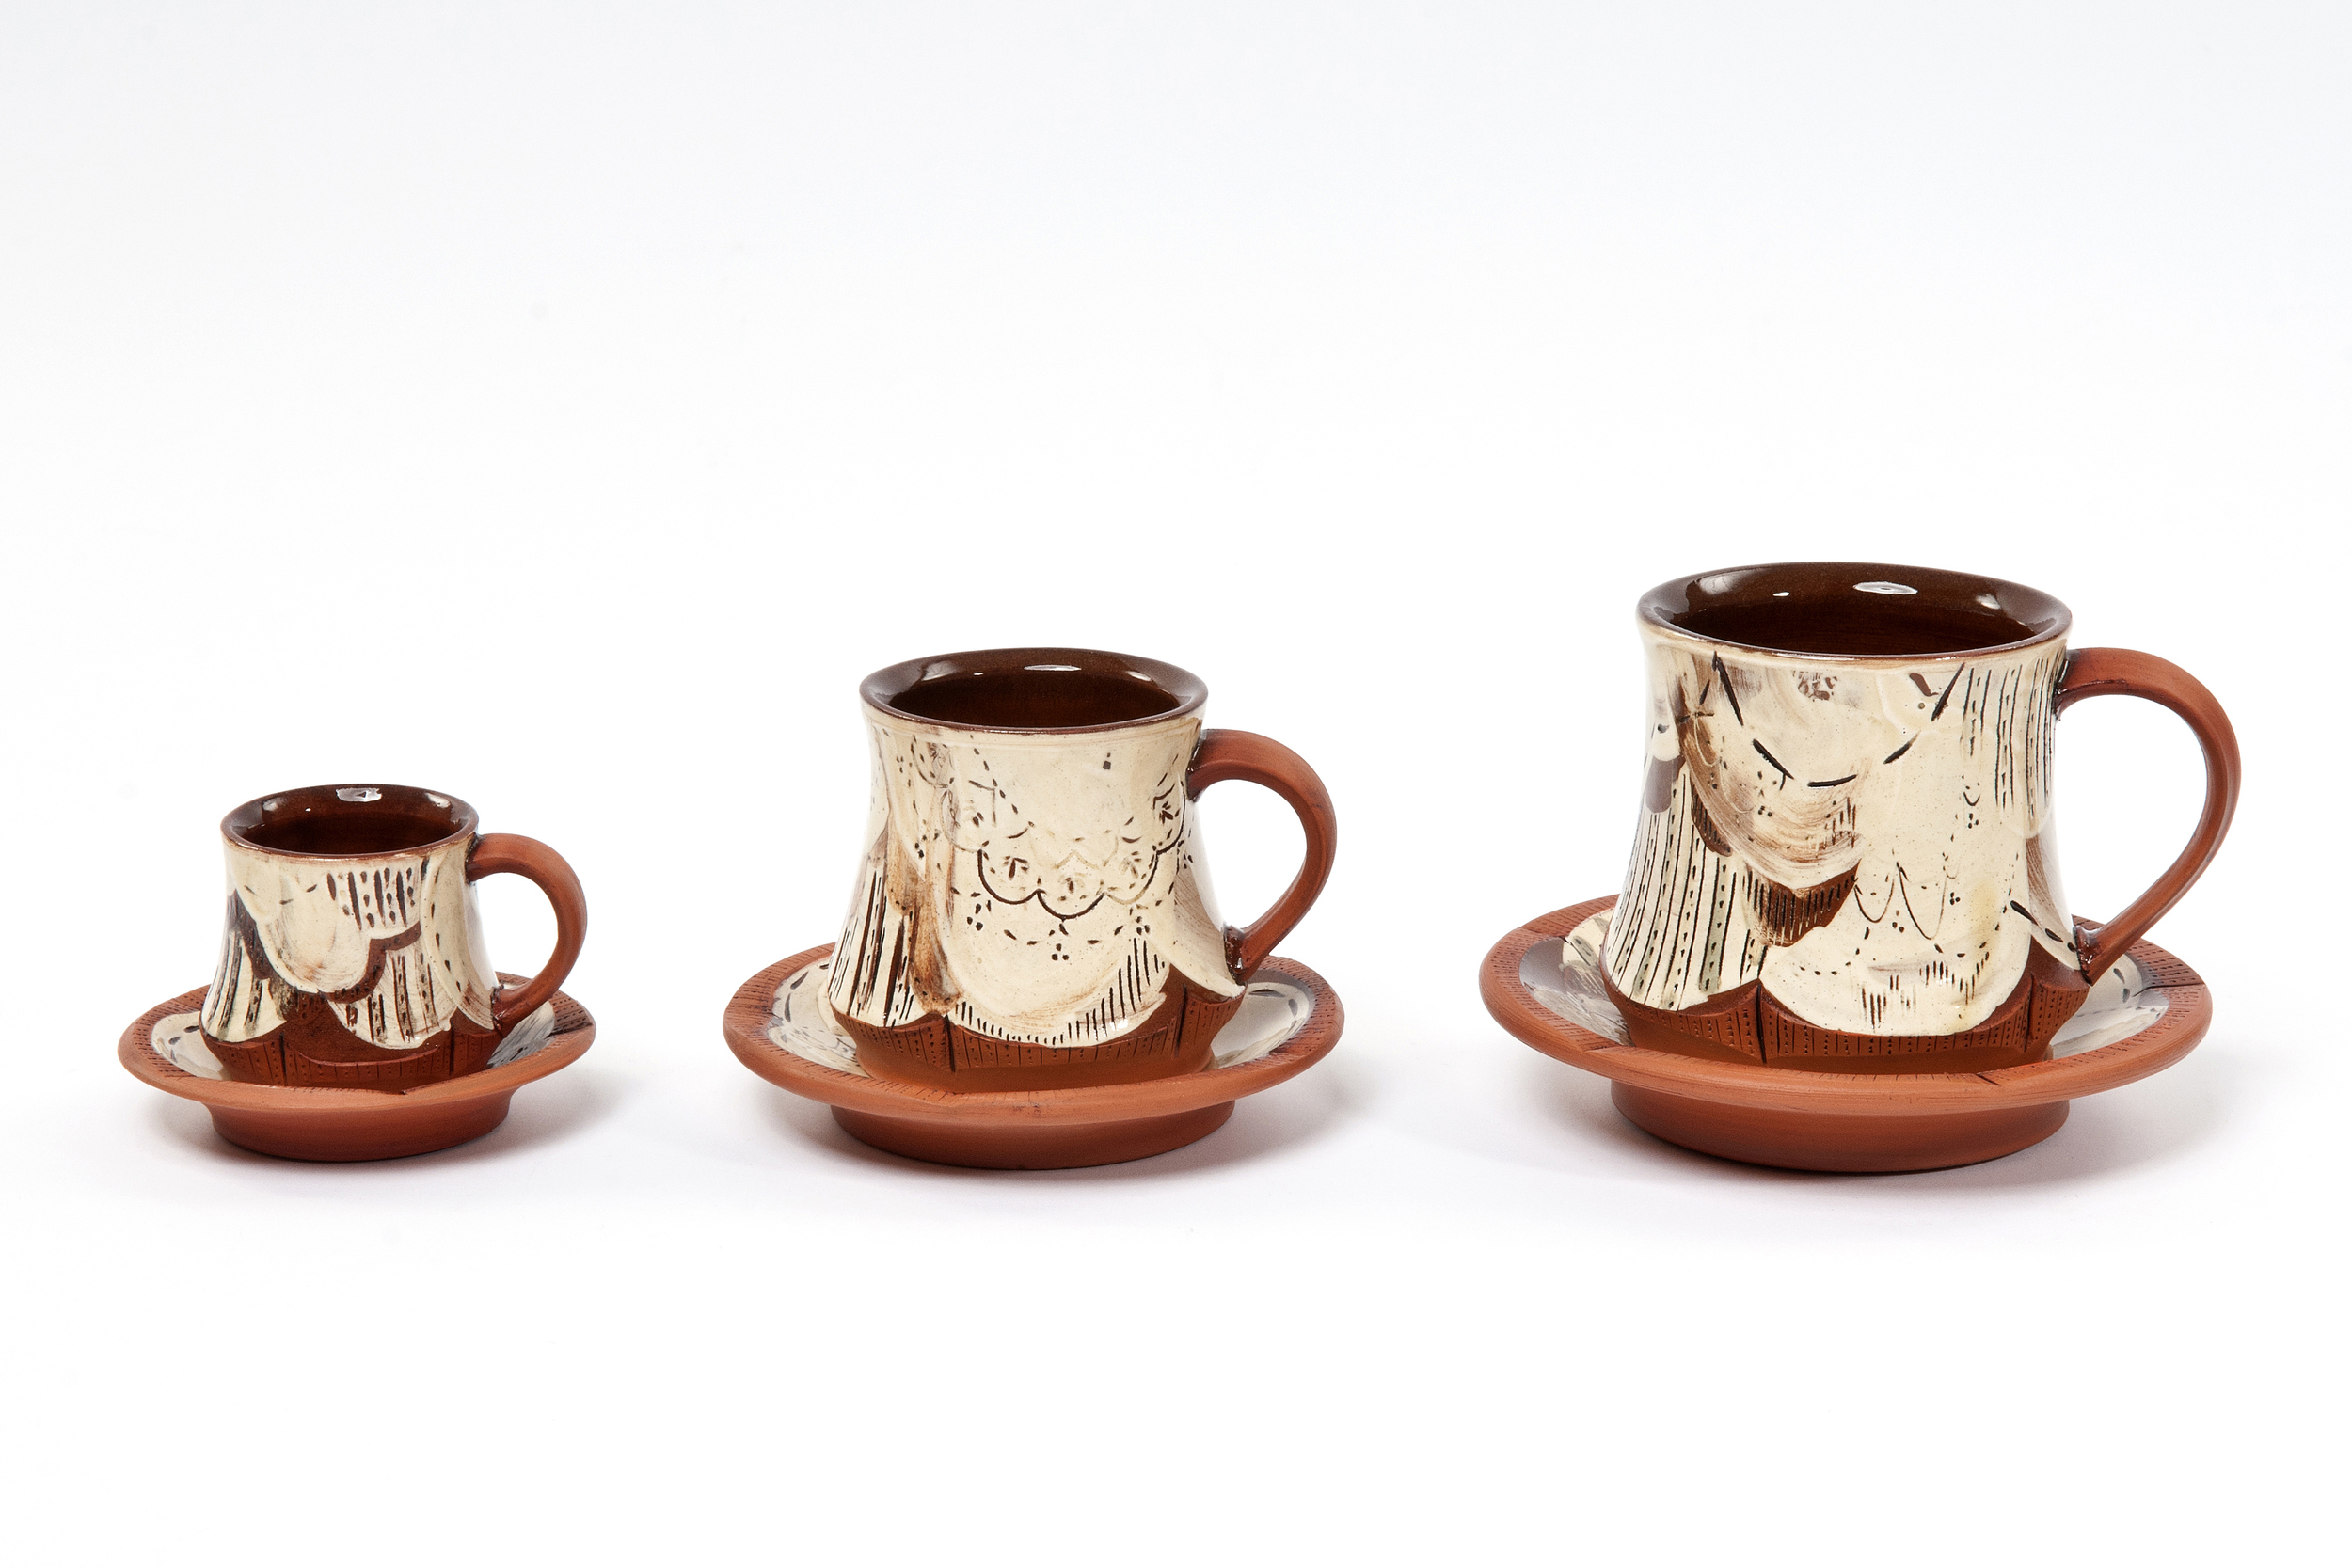 Cups and Saucers - Small £40, Medium £45, Large £50